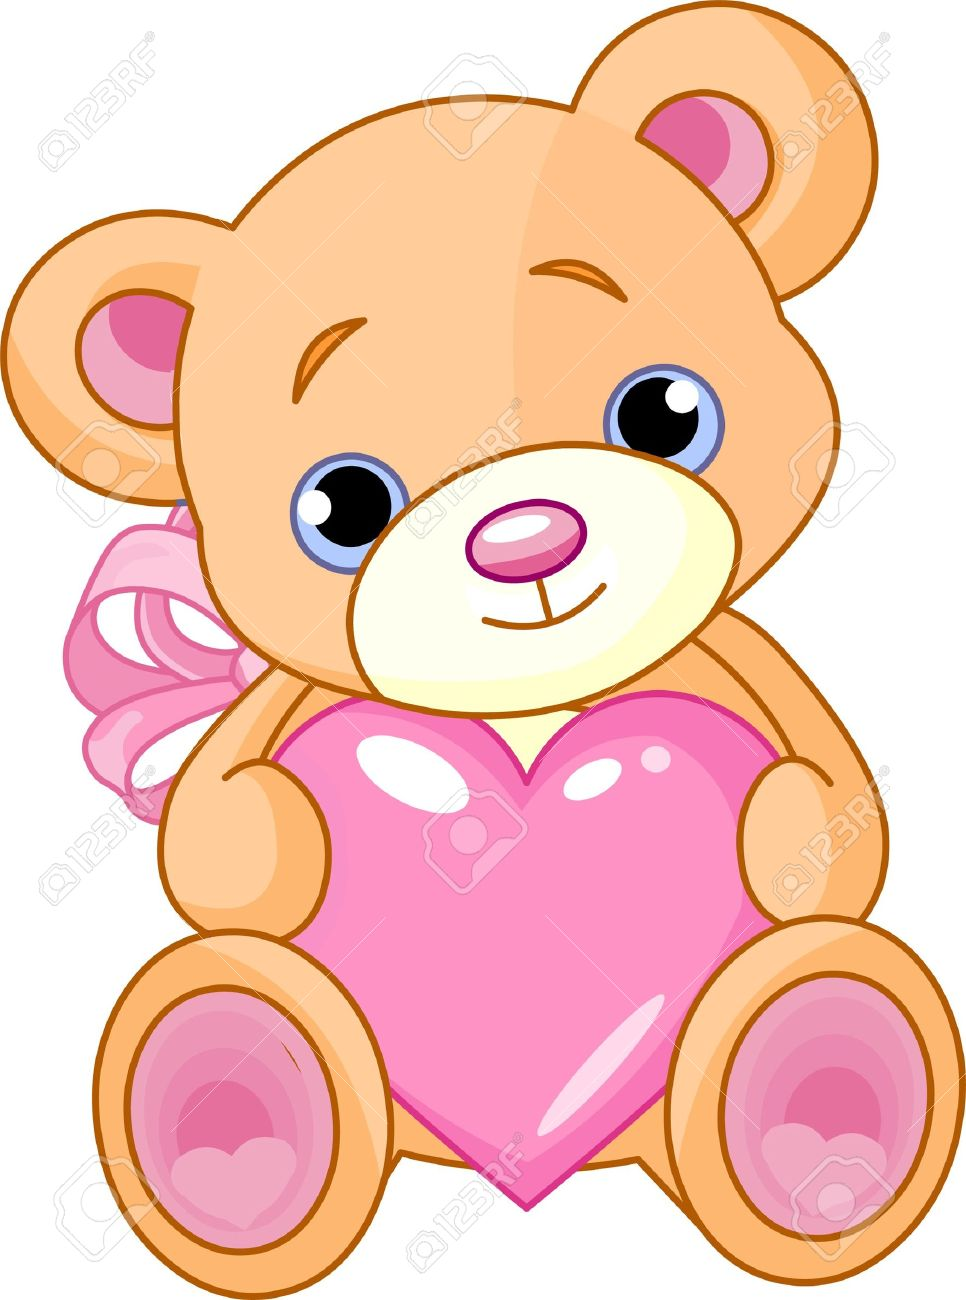 966x1300 7628241 Illustration Of Cute Little Teddy Bear Holding Pink Heart